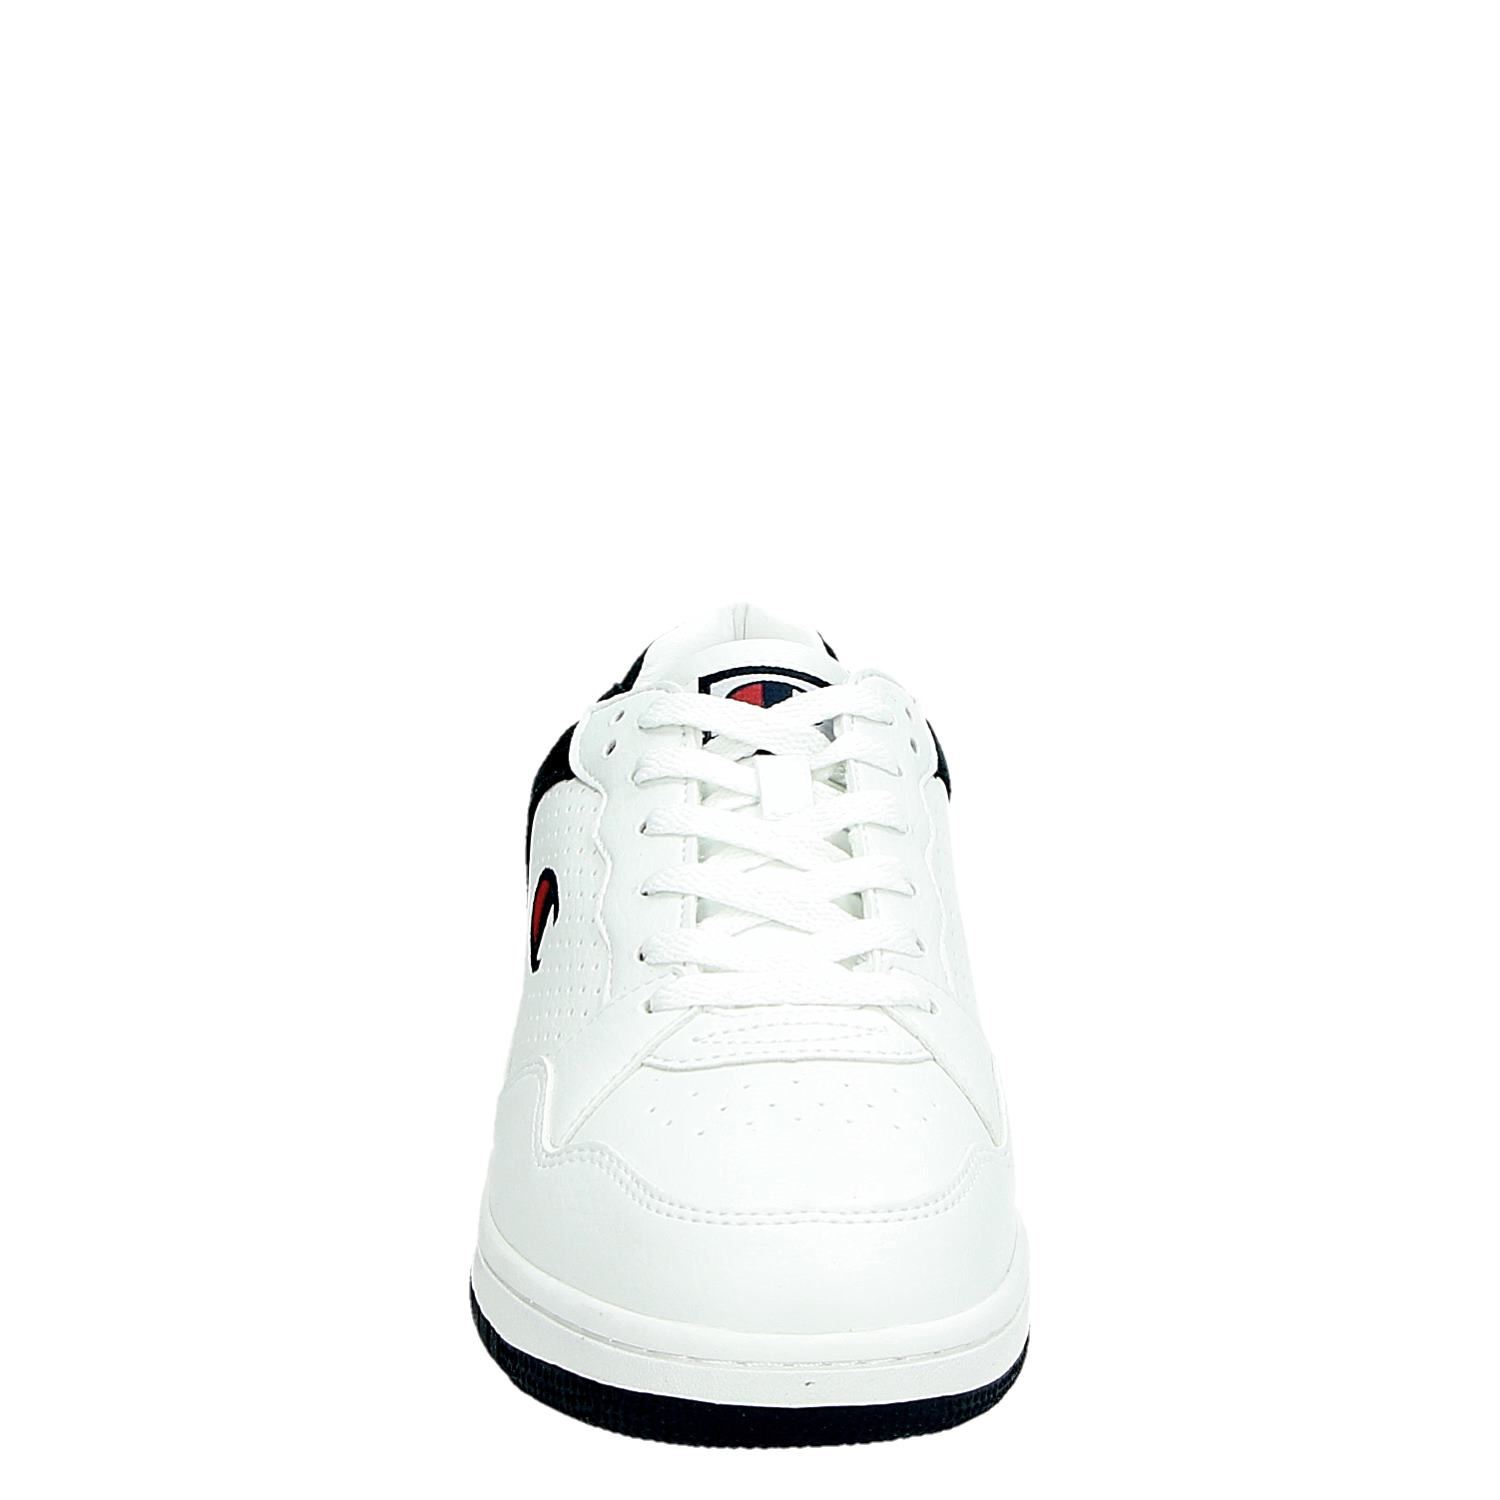 Champion Sneakers Multi Heren Lage Normaal I6gyvf7Yb